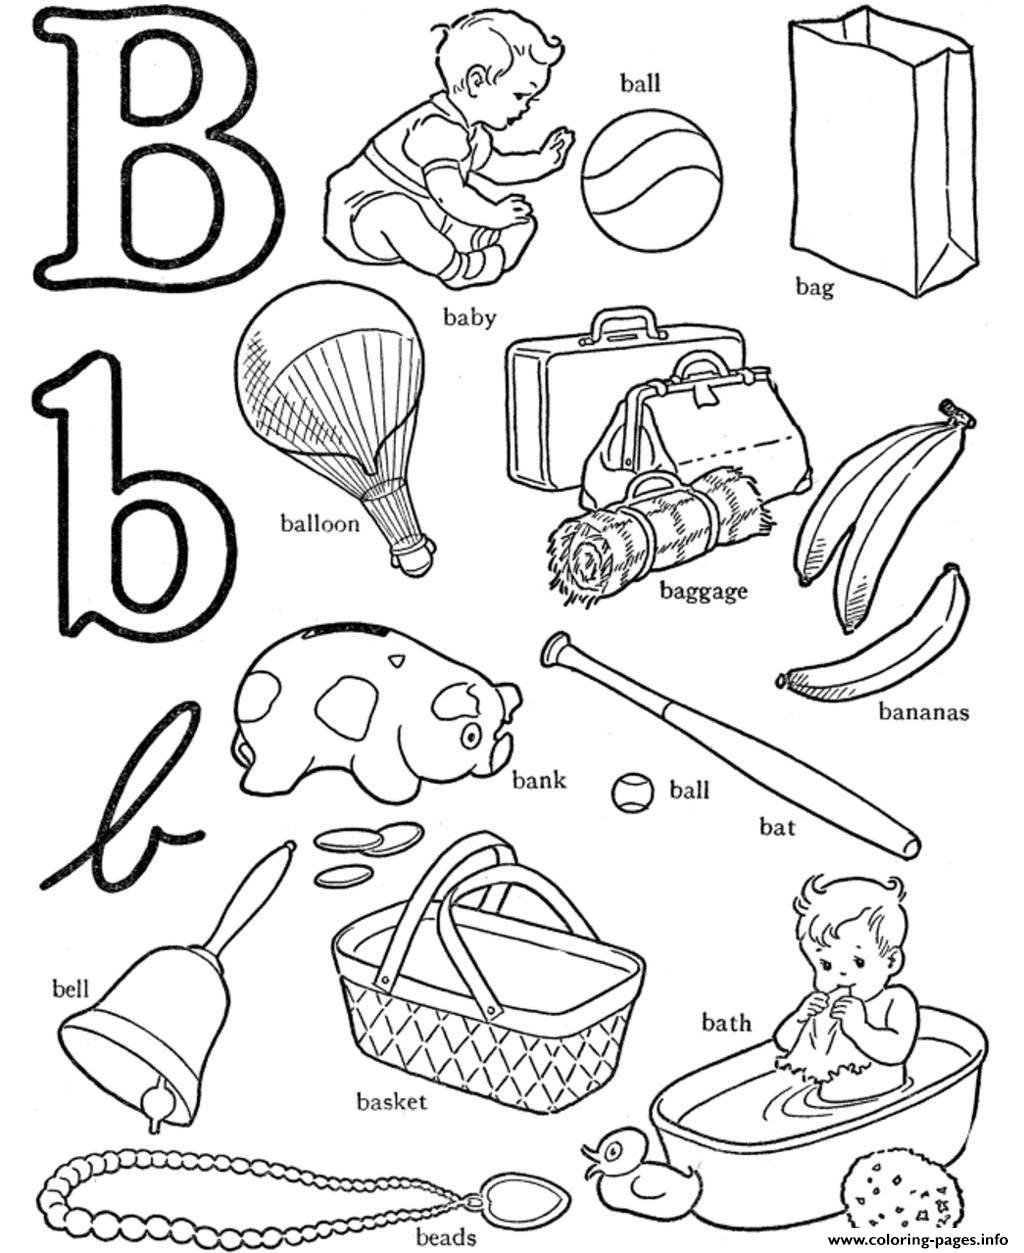 B For Words Alphabet S3b0c Coloring Pages Printable